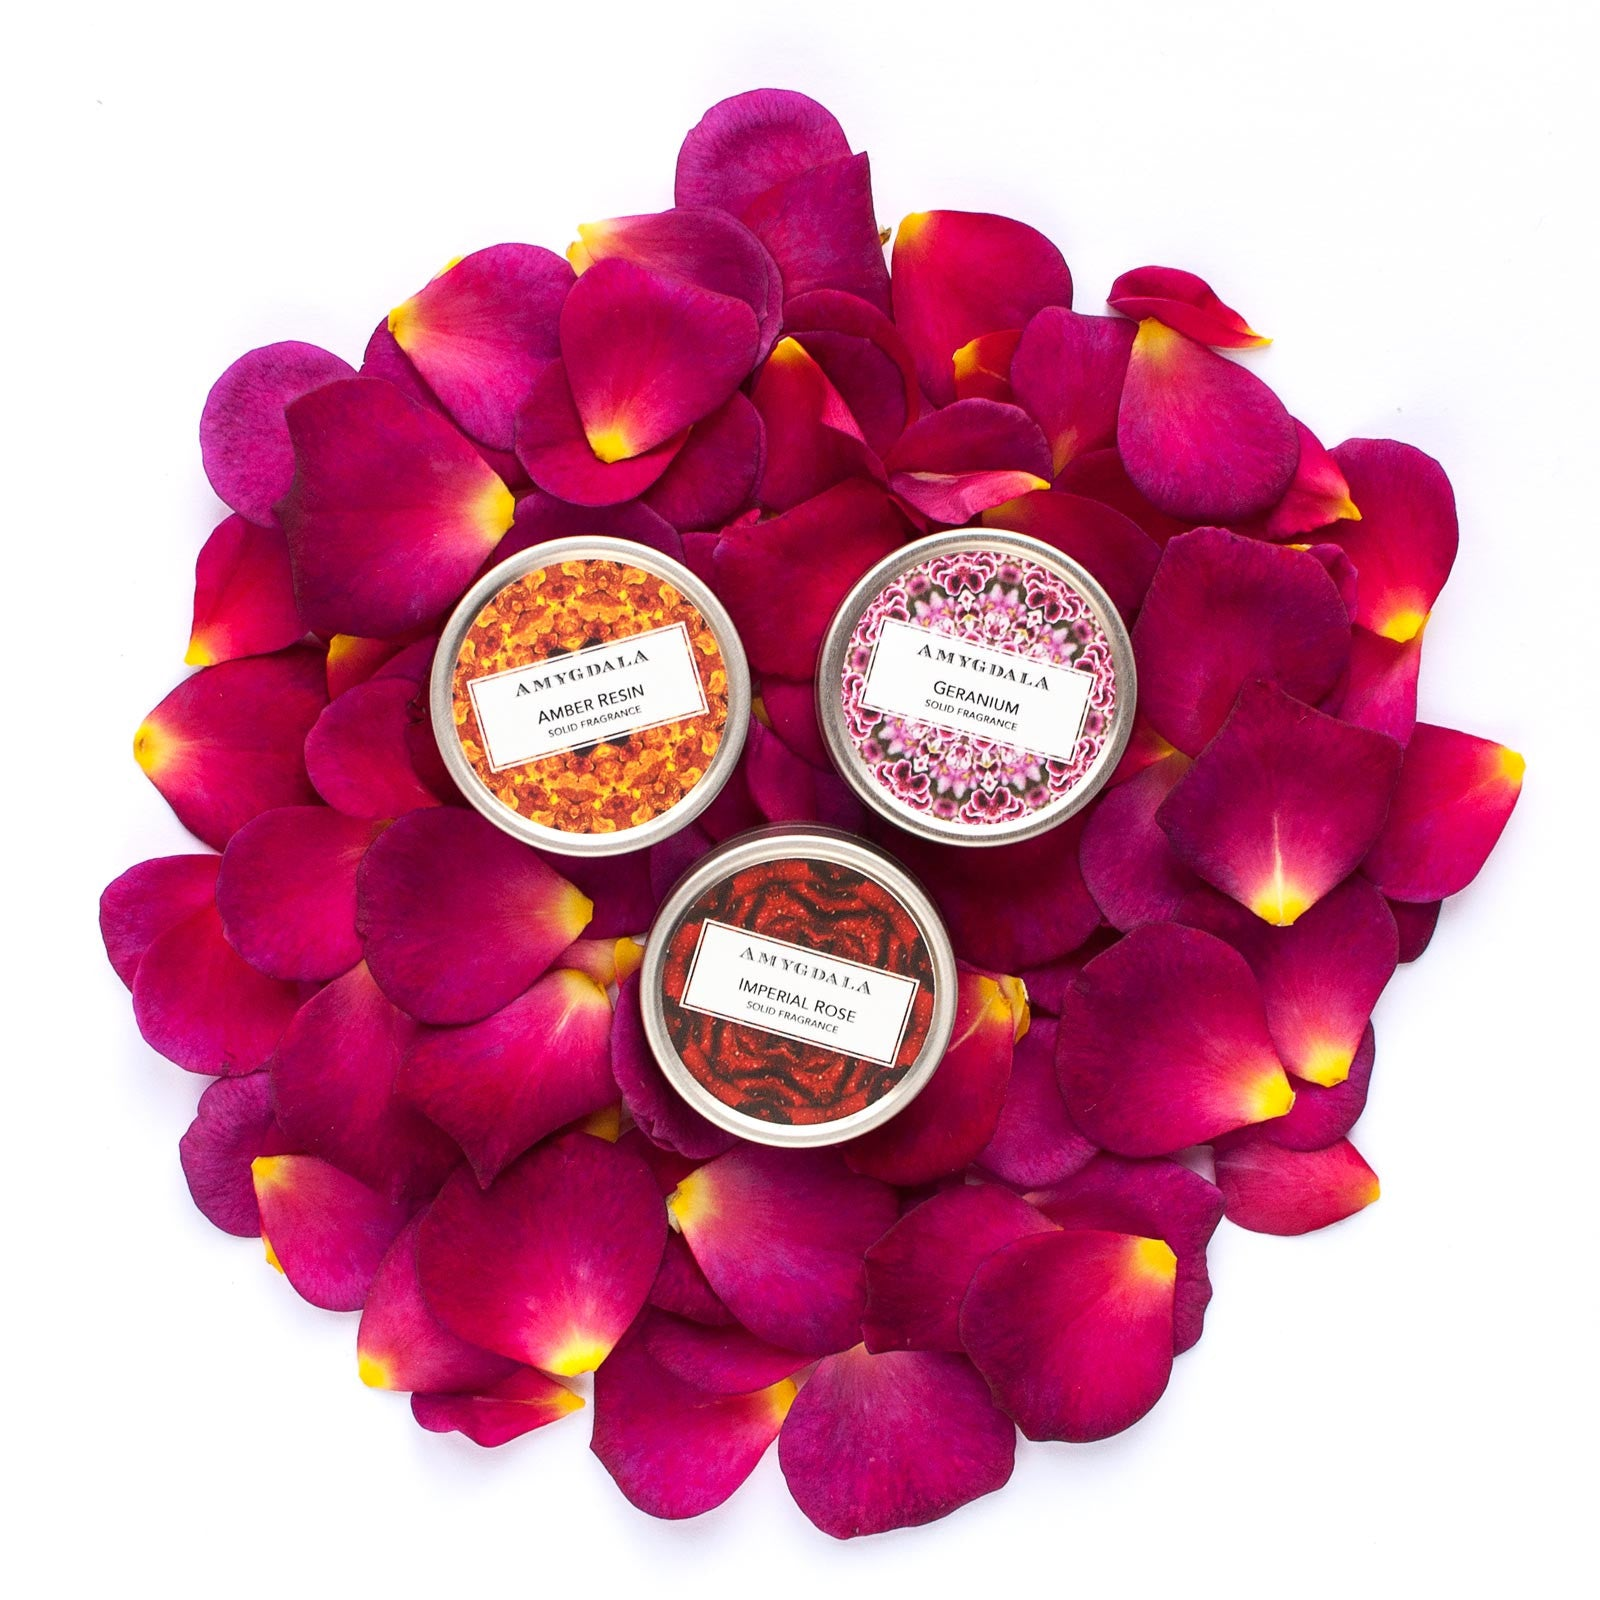 exotic amber rose and geranium solid perfume blend